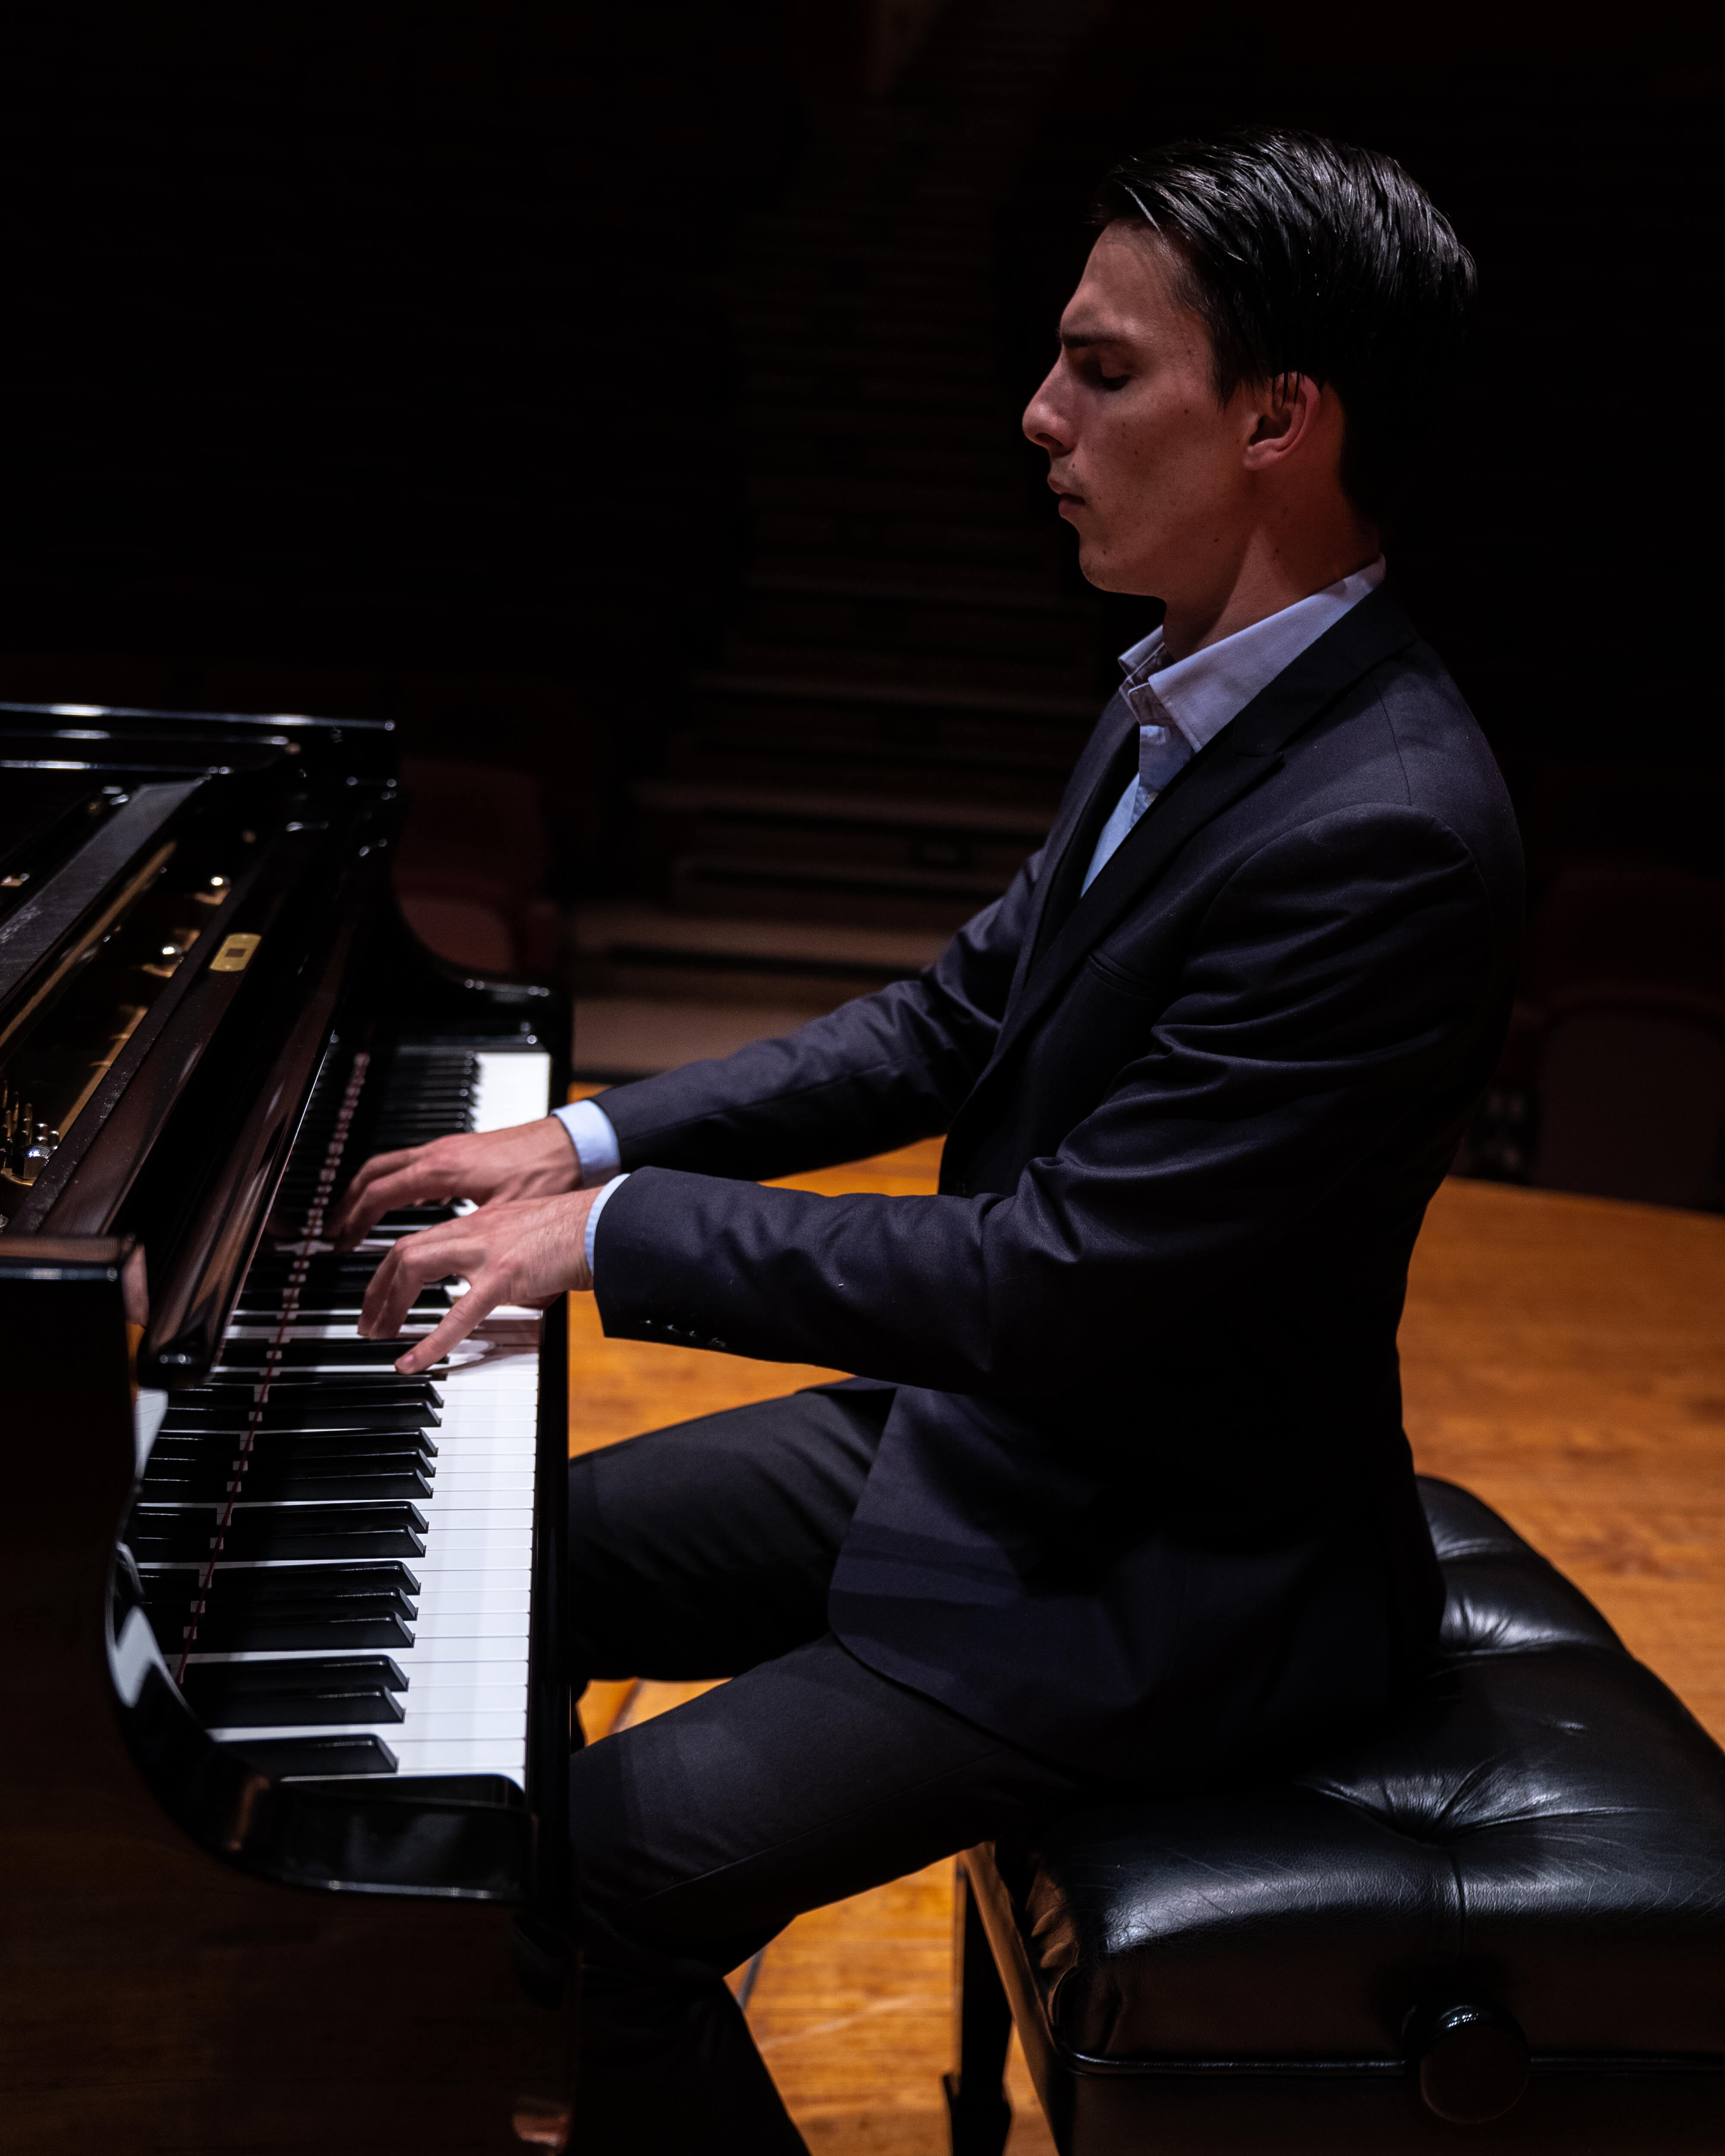 A famous pianist playing with impeccable technique.